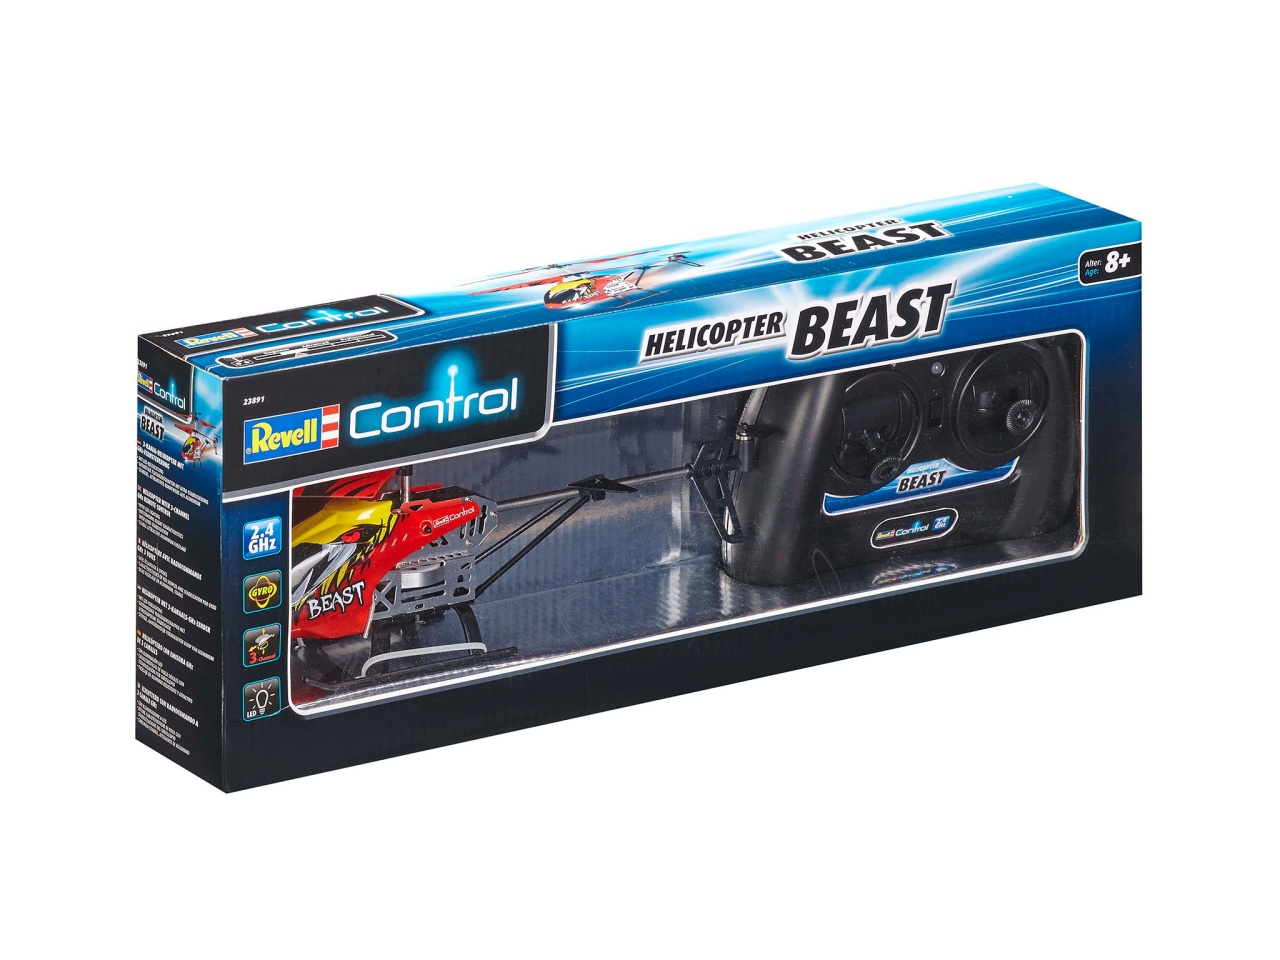 Revell 23891 Helicopter Beast